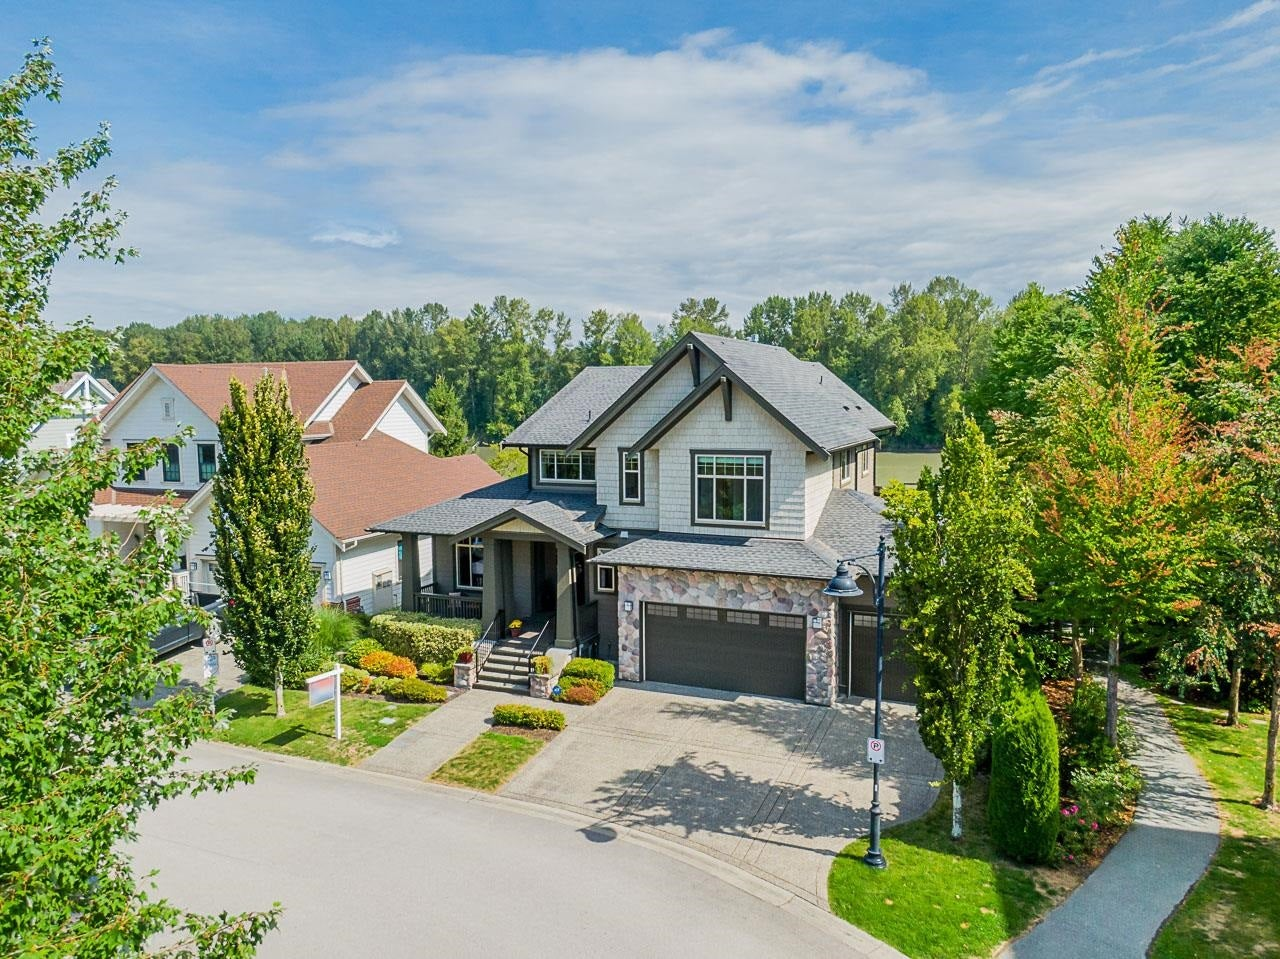 23165 MUENCH TRAIL - Fort Langley House/Single Family for sale, 5 Bedrooms (R2626035) - #1